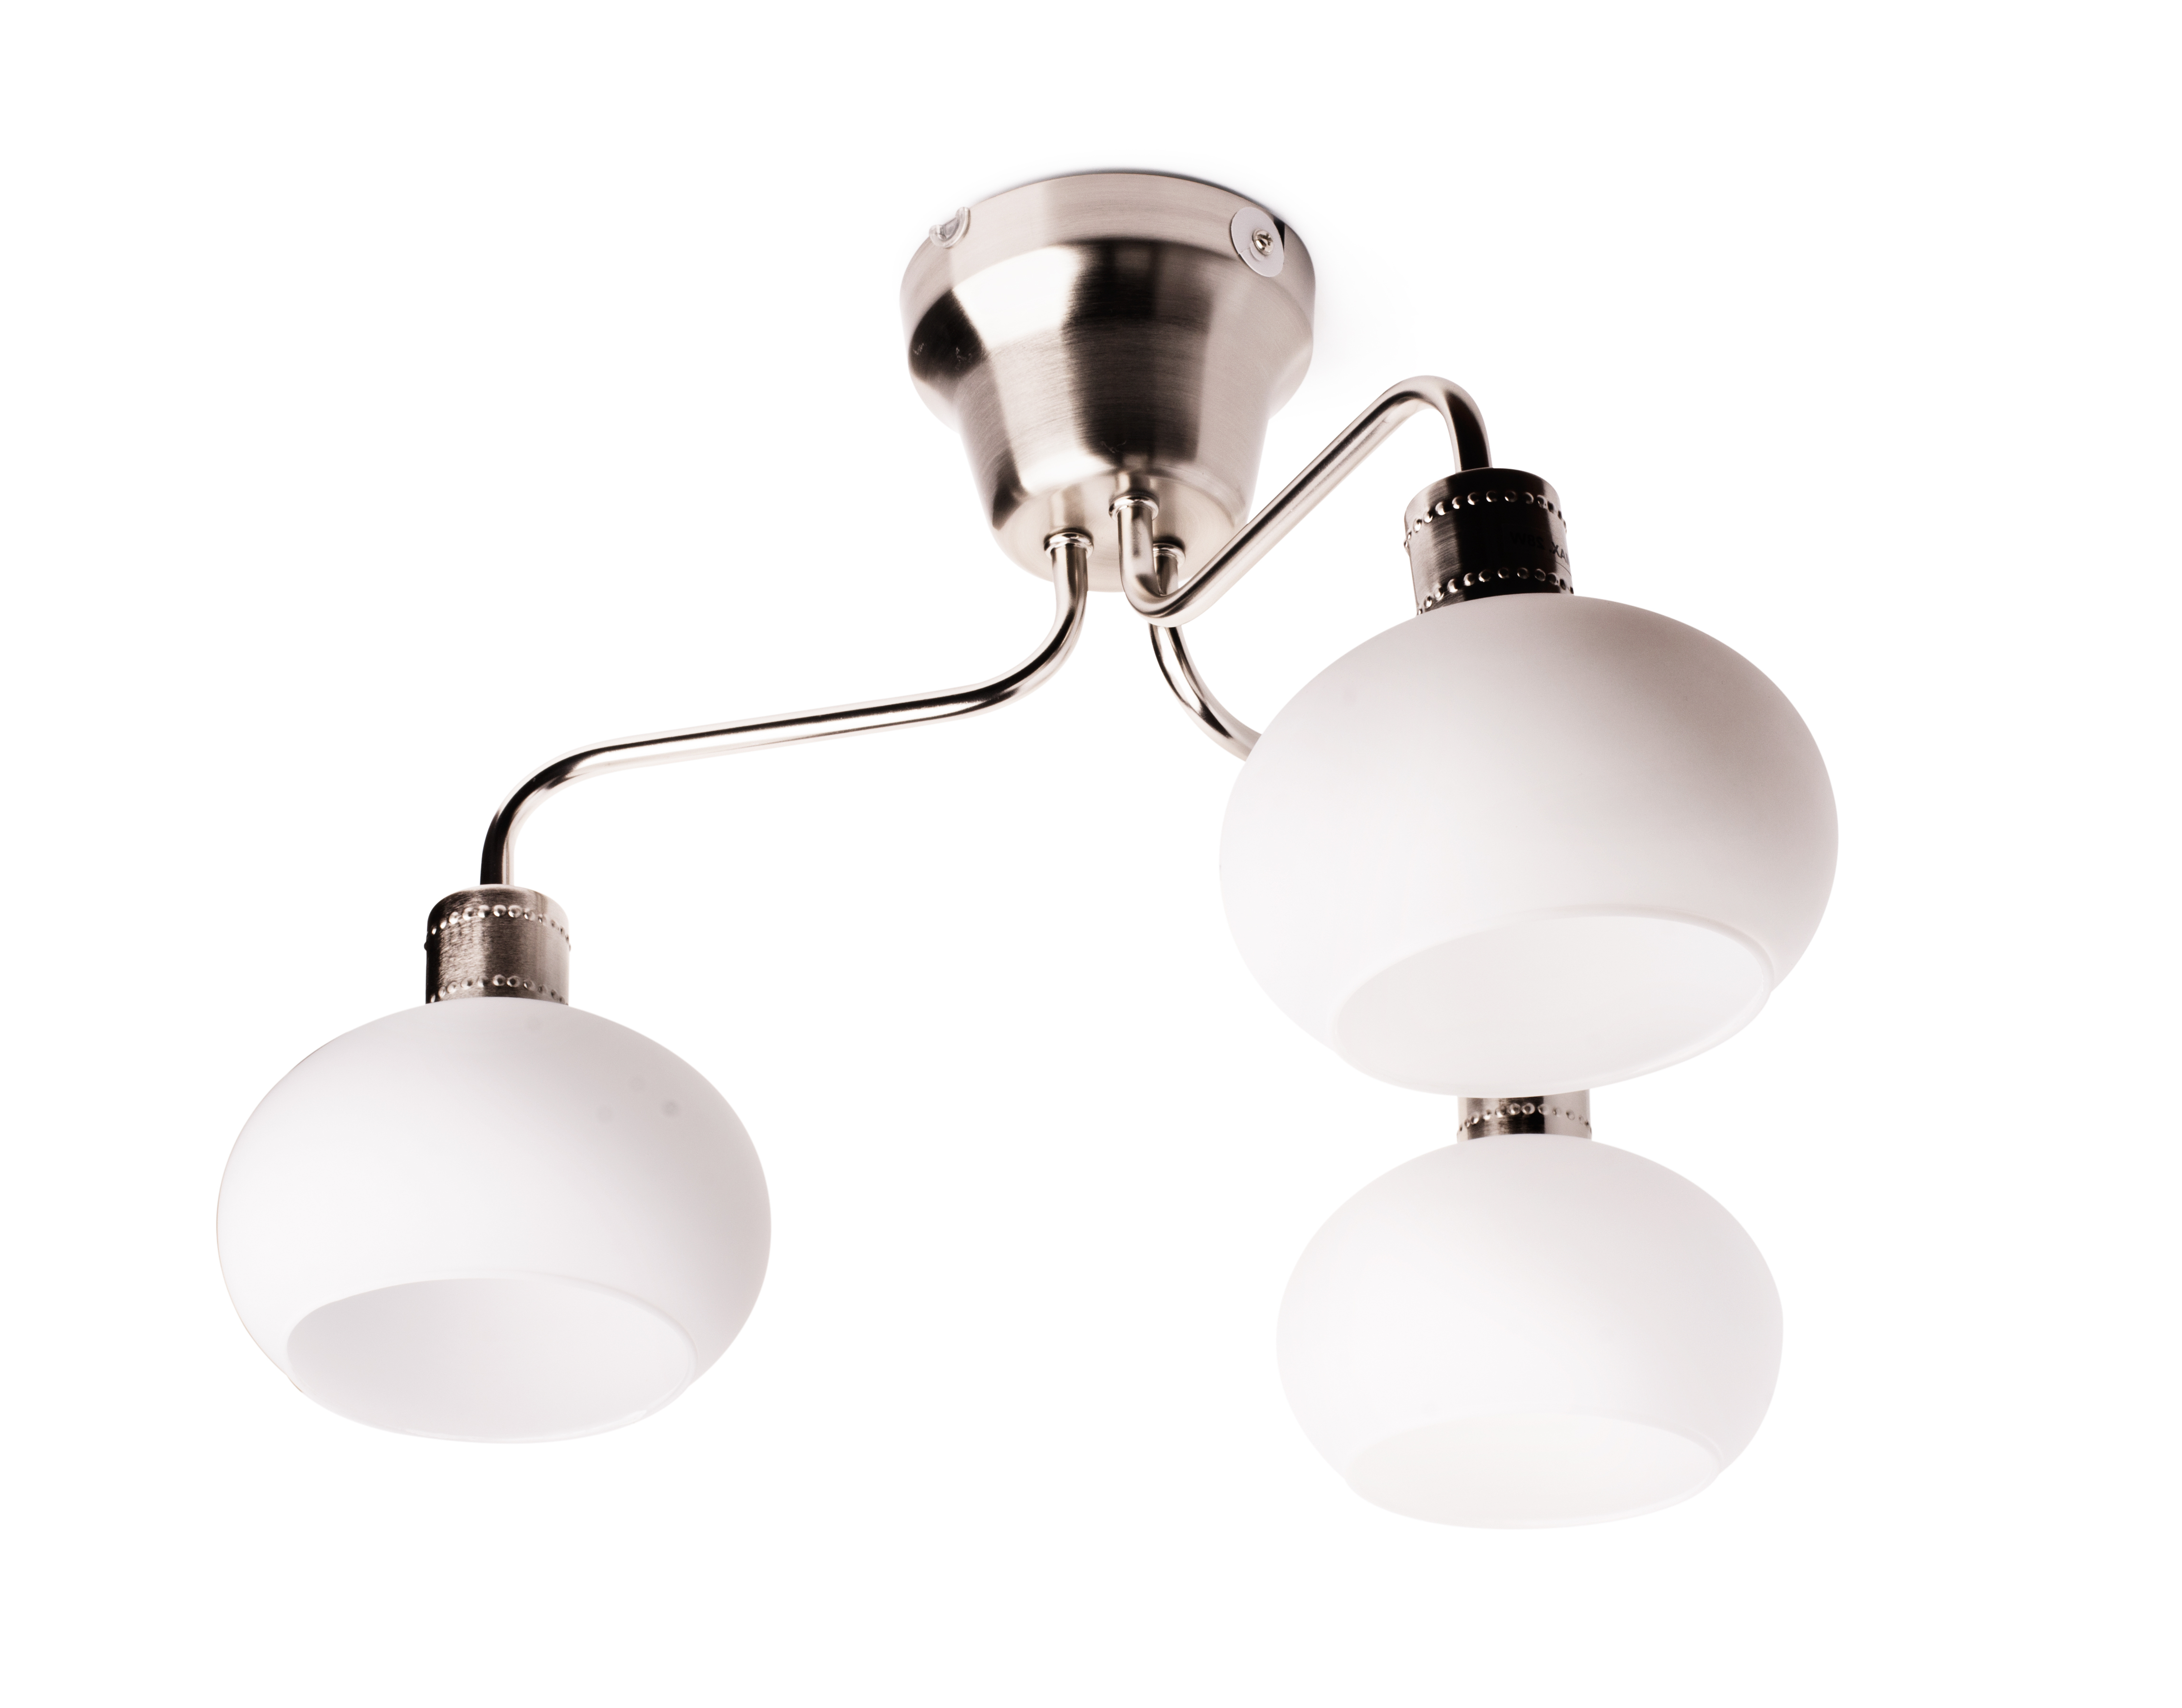 Messing Lampe Flos Lampe Lille